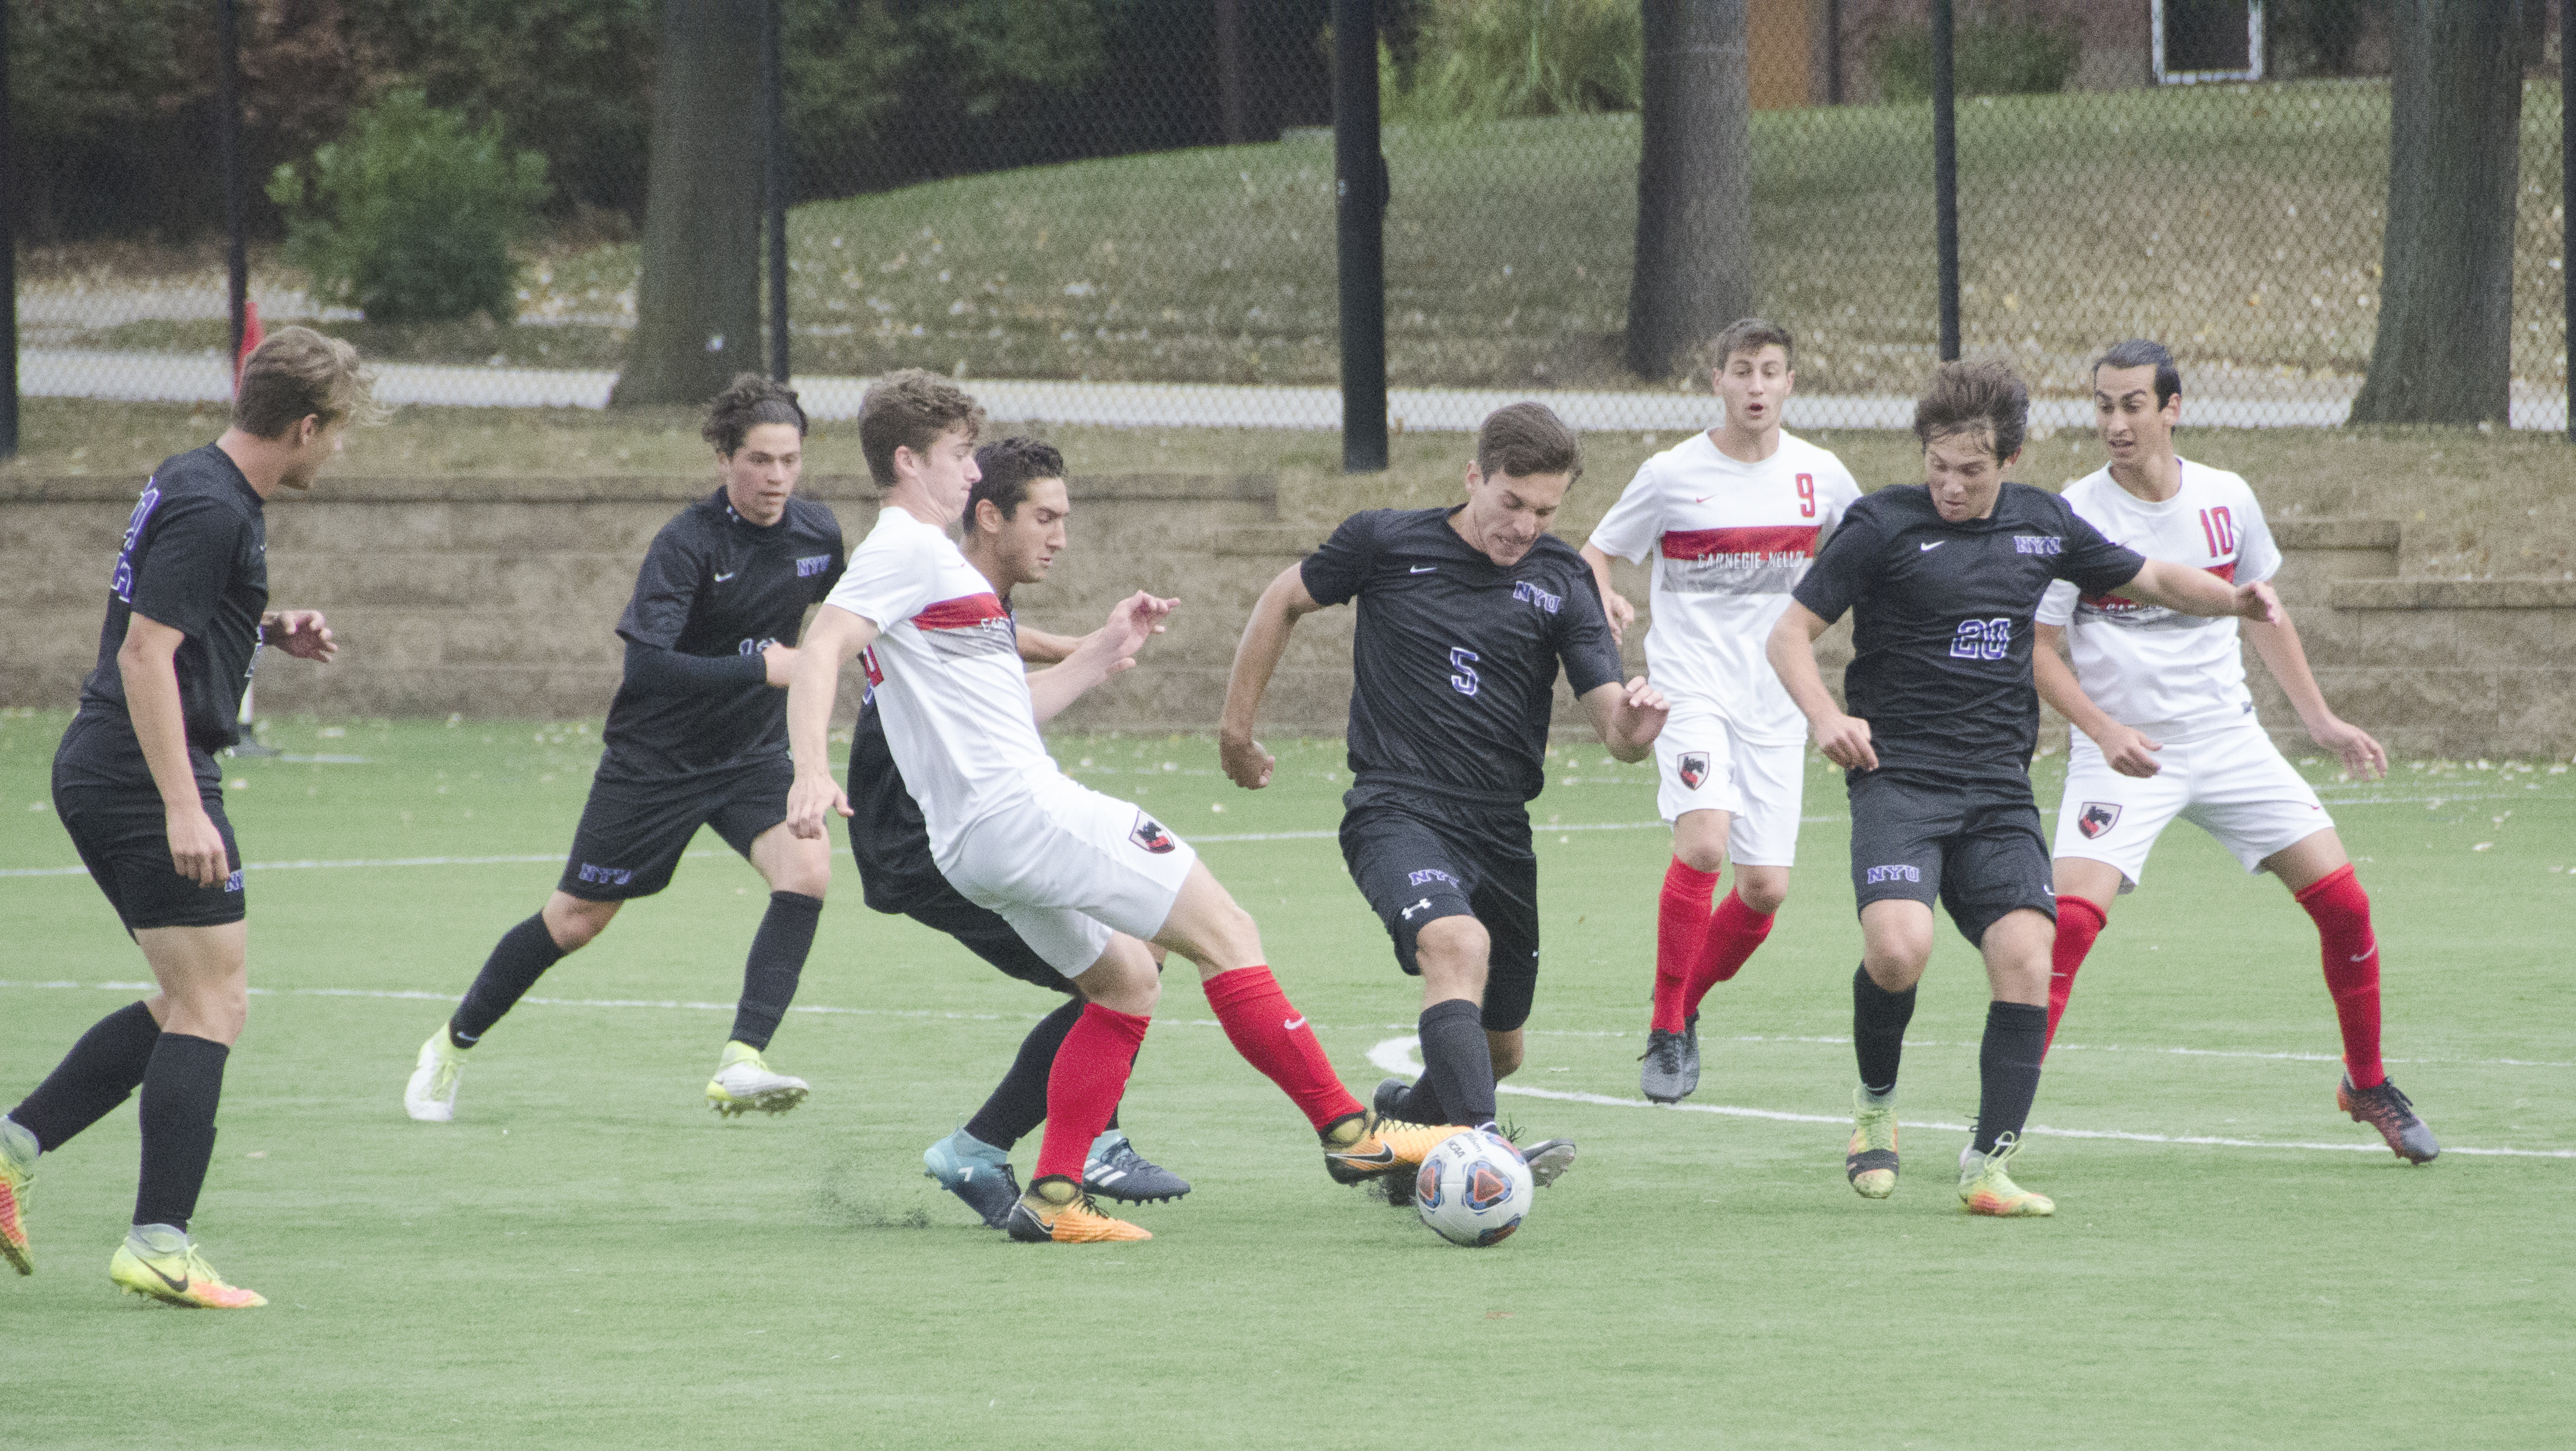 The men's soccer team pressures New York University's defense, keeping the ball away from their side. (credit: Lisa Qian/ Staff Photographer)